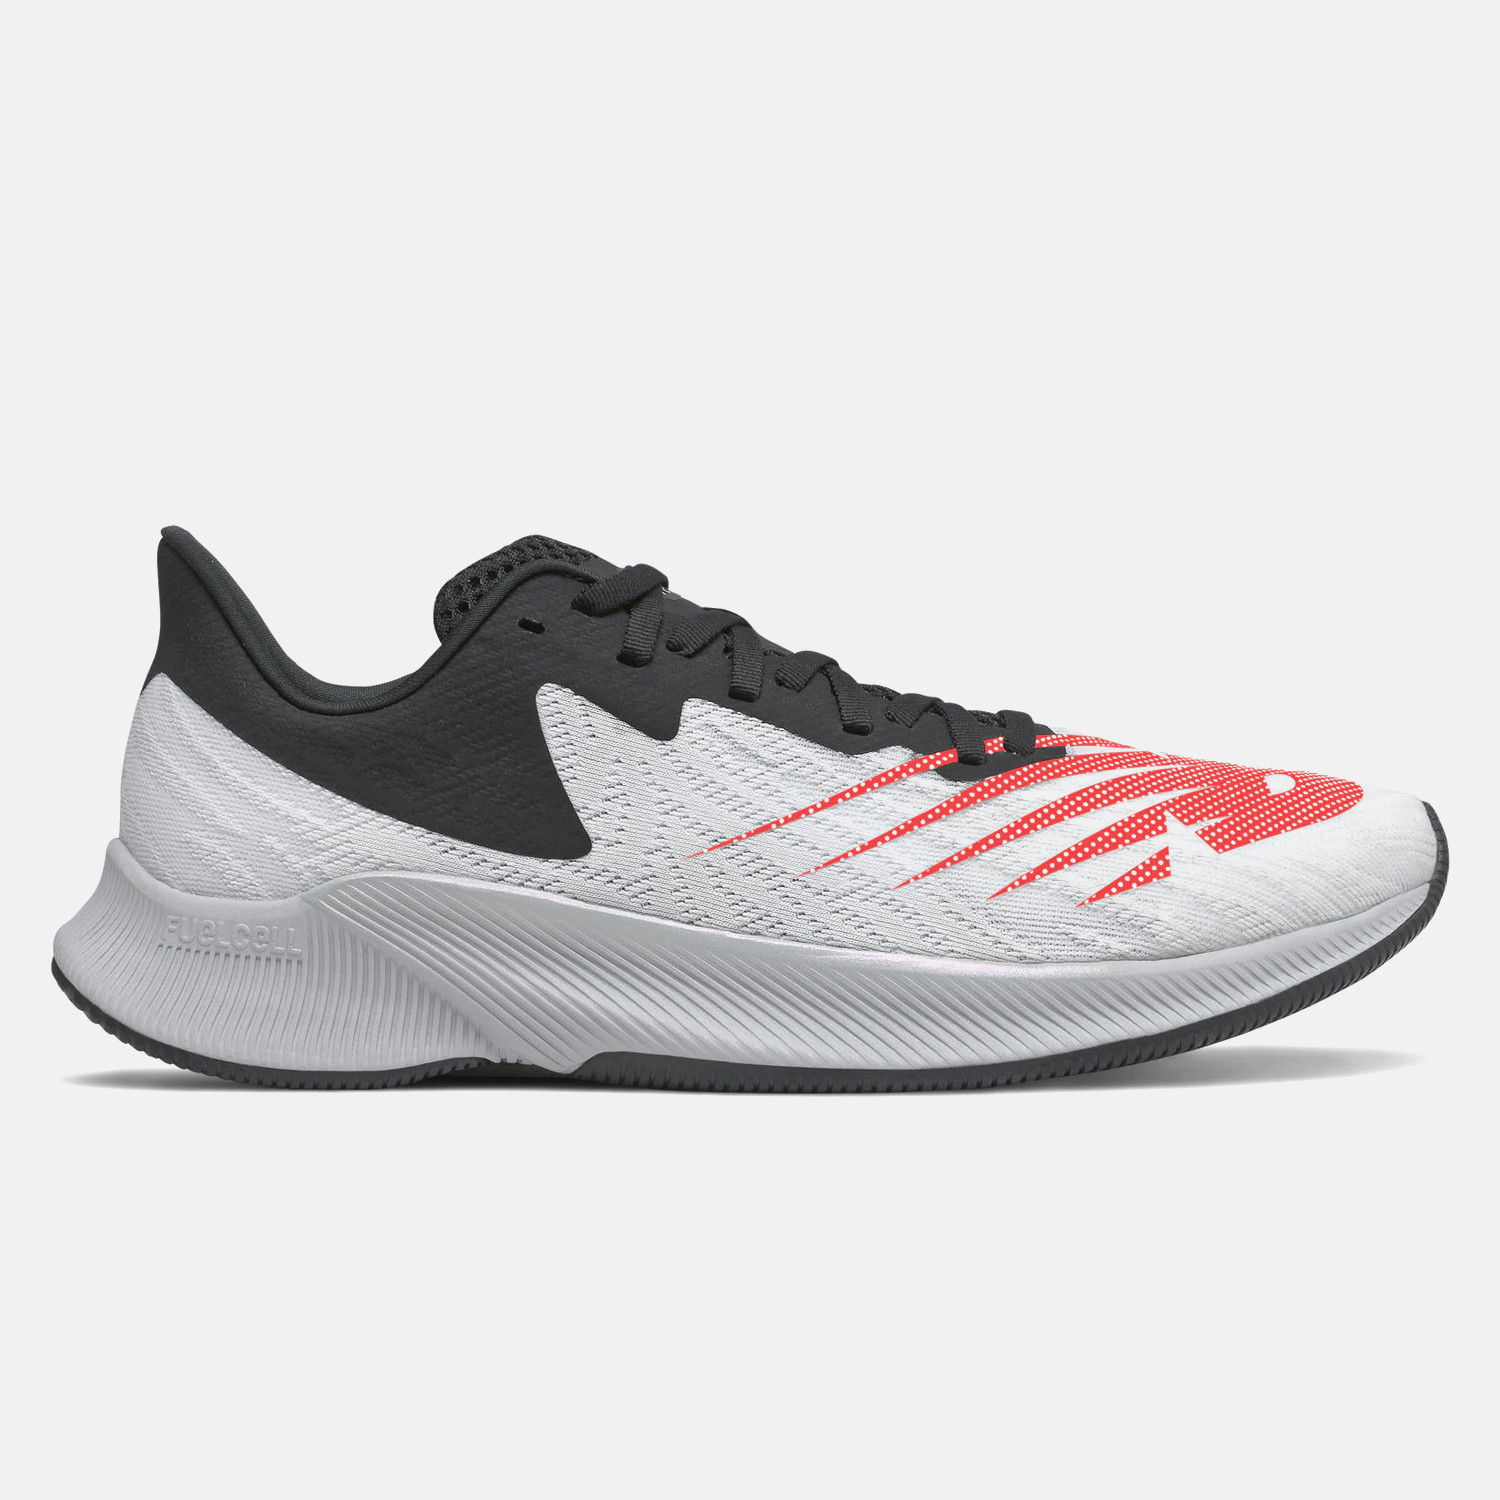 New Balance FuelCell Prism EnergyStreak Ανδρικά Παπούτσια (9000056835_1539)